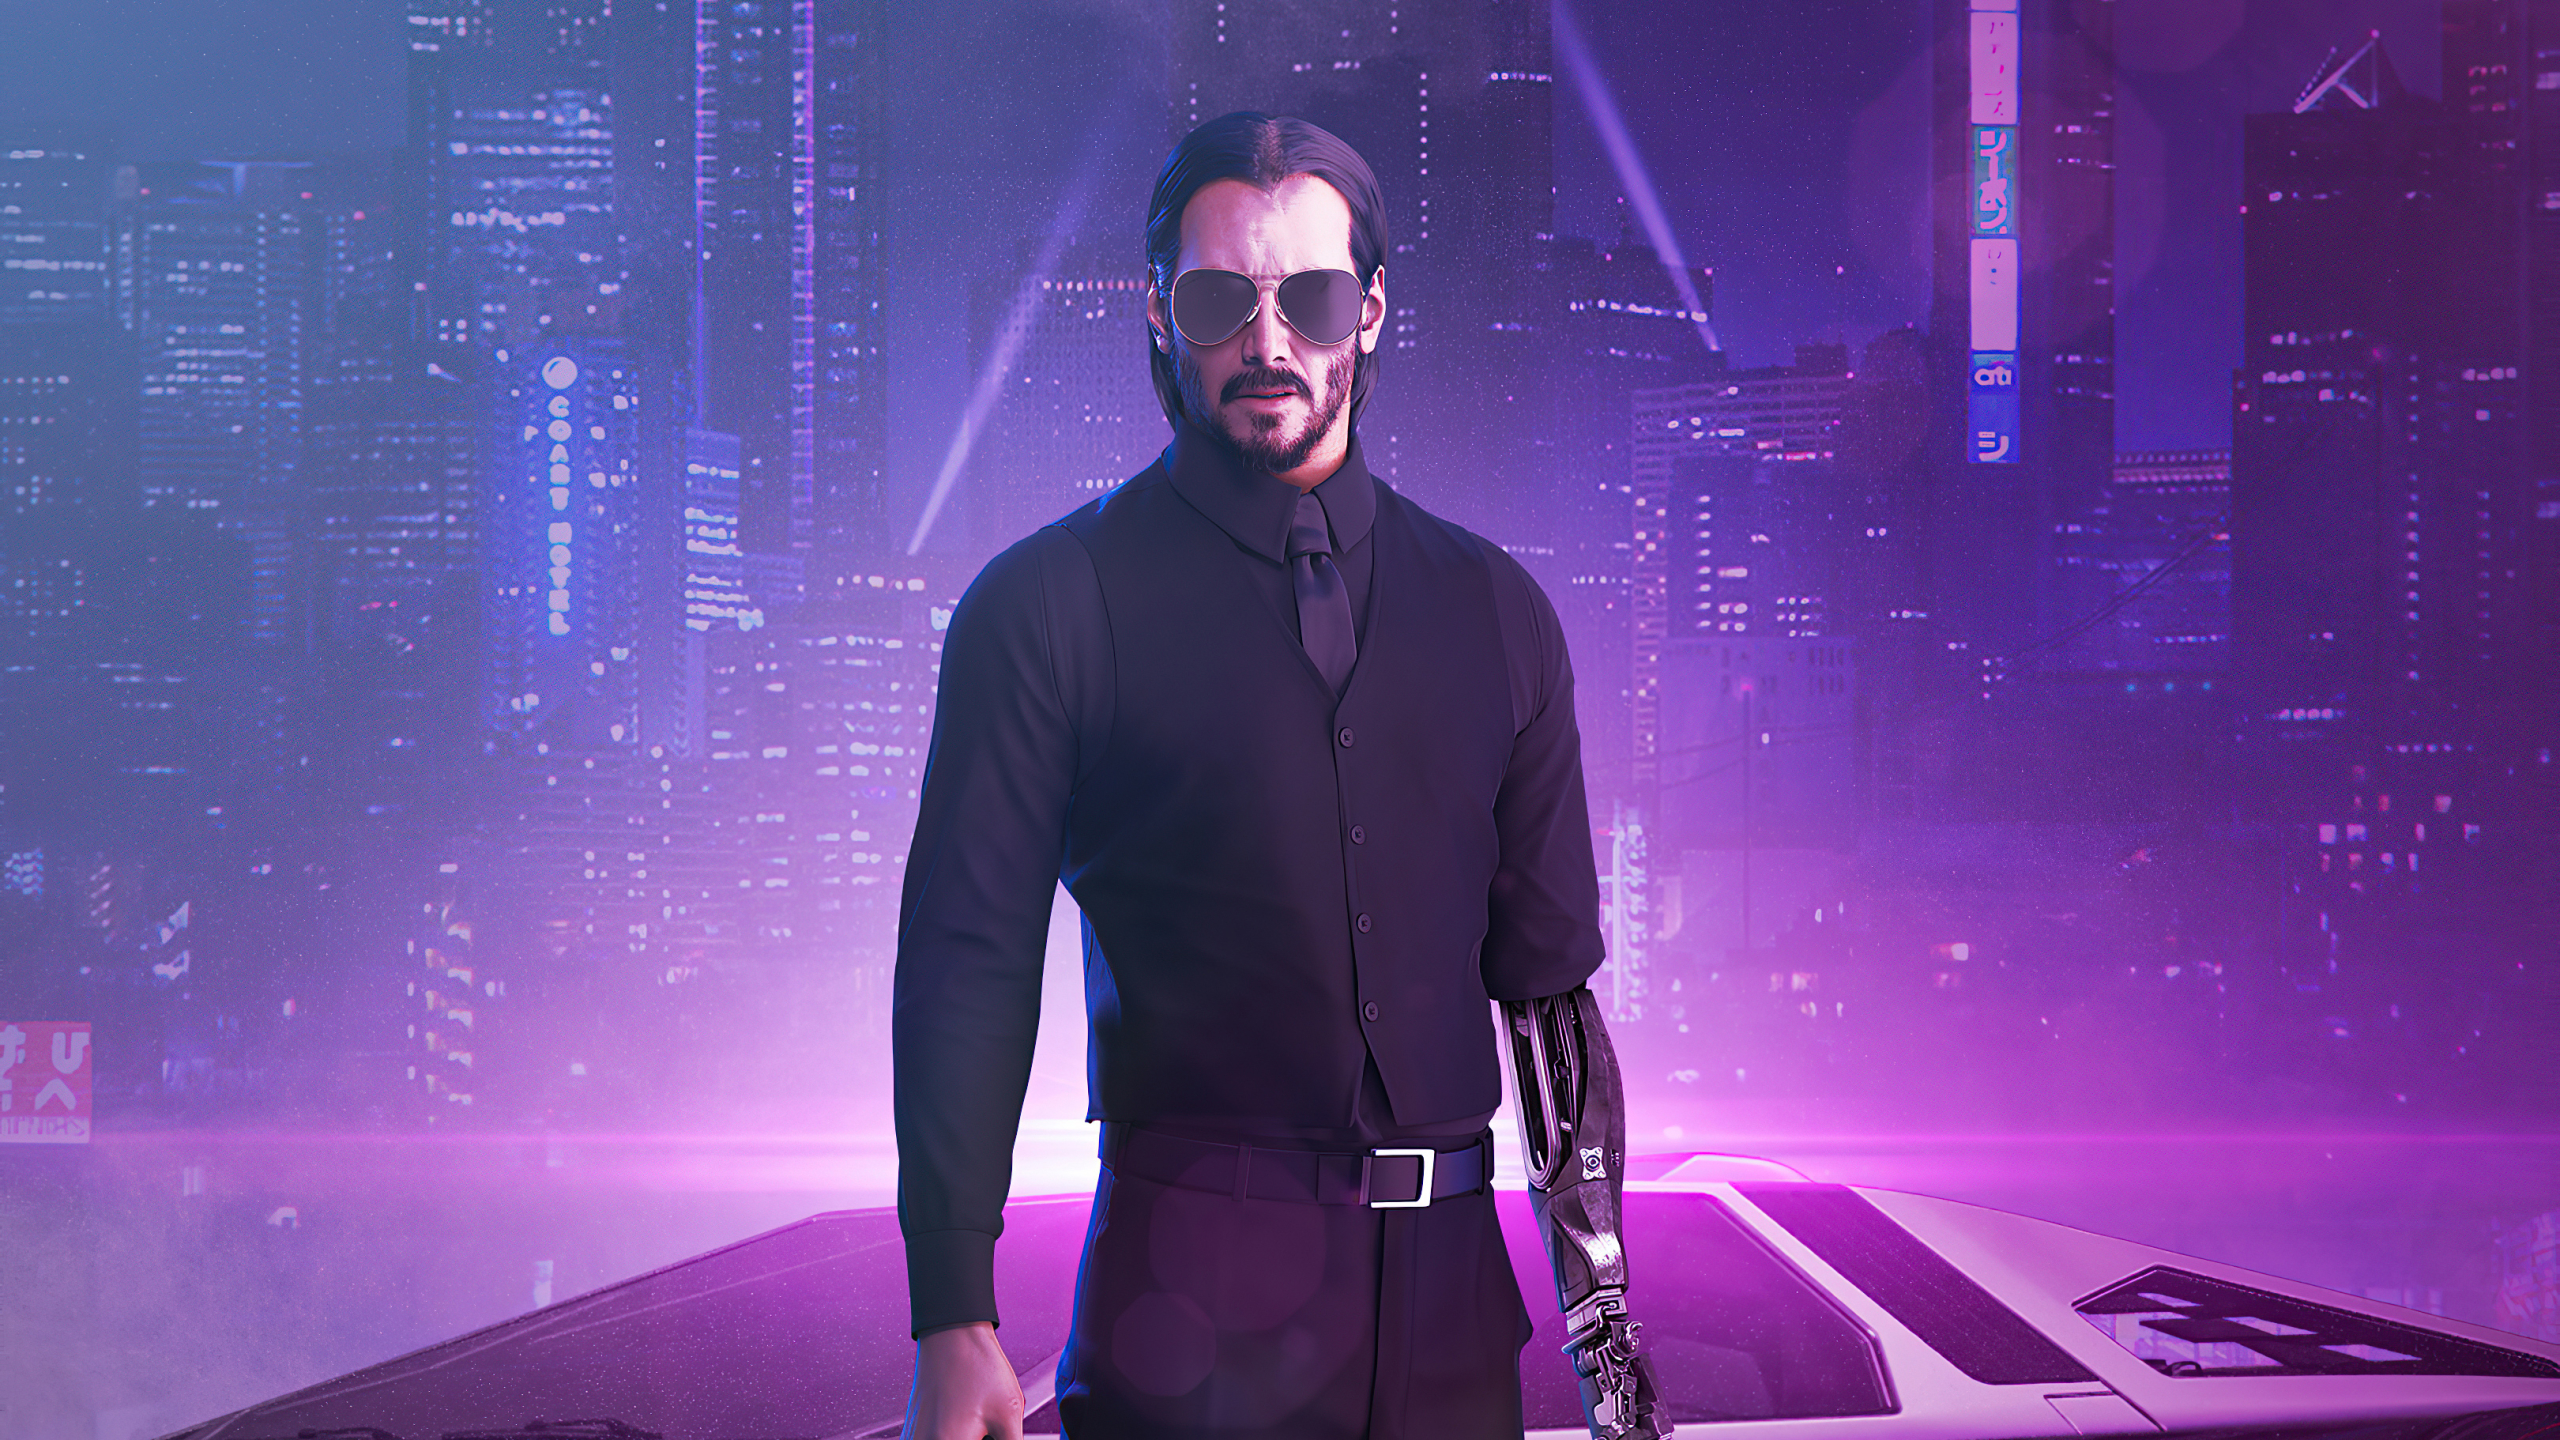 2560x1440 Cyberpunk 2077 X Keanu Reeves Fan Illustration 1440p Resolution Wallpaper Hd Artist 4k Wallpapers Images Photos And Background